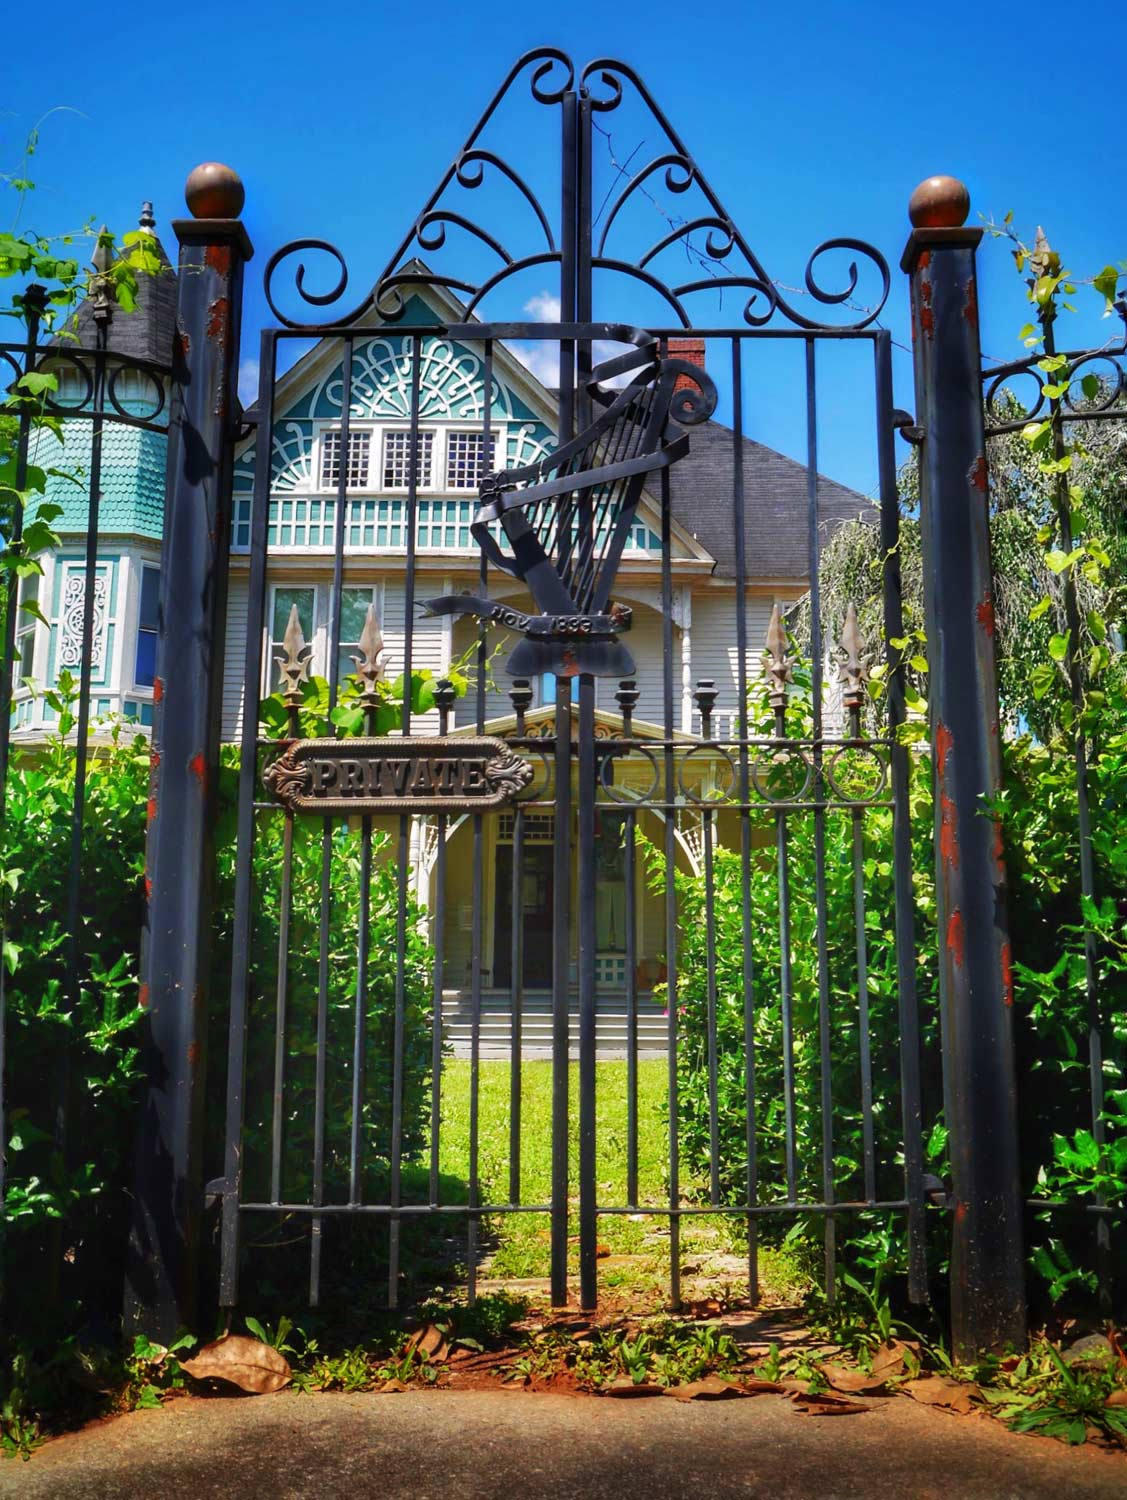 Brock-Brown-Hall Gate